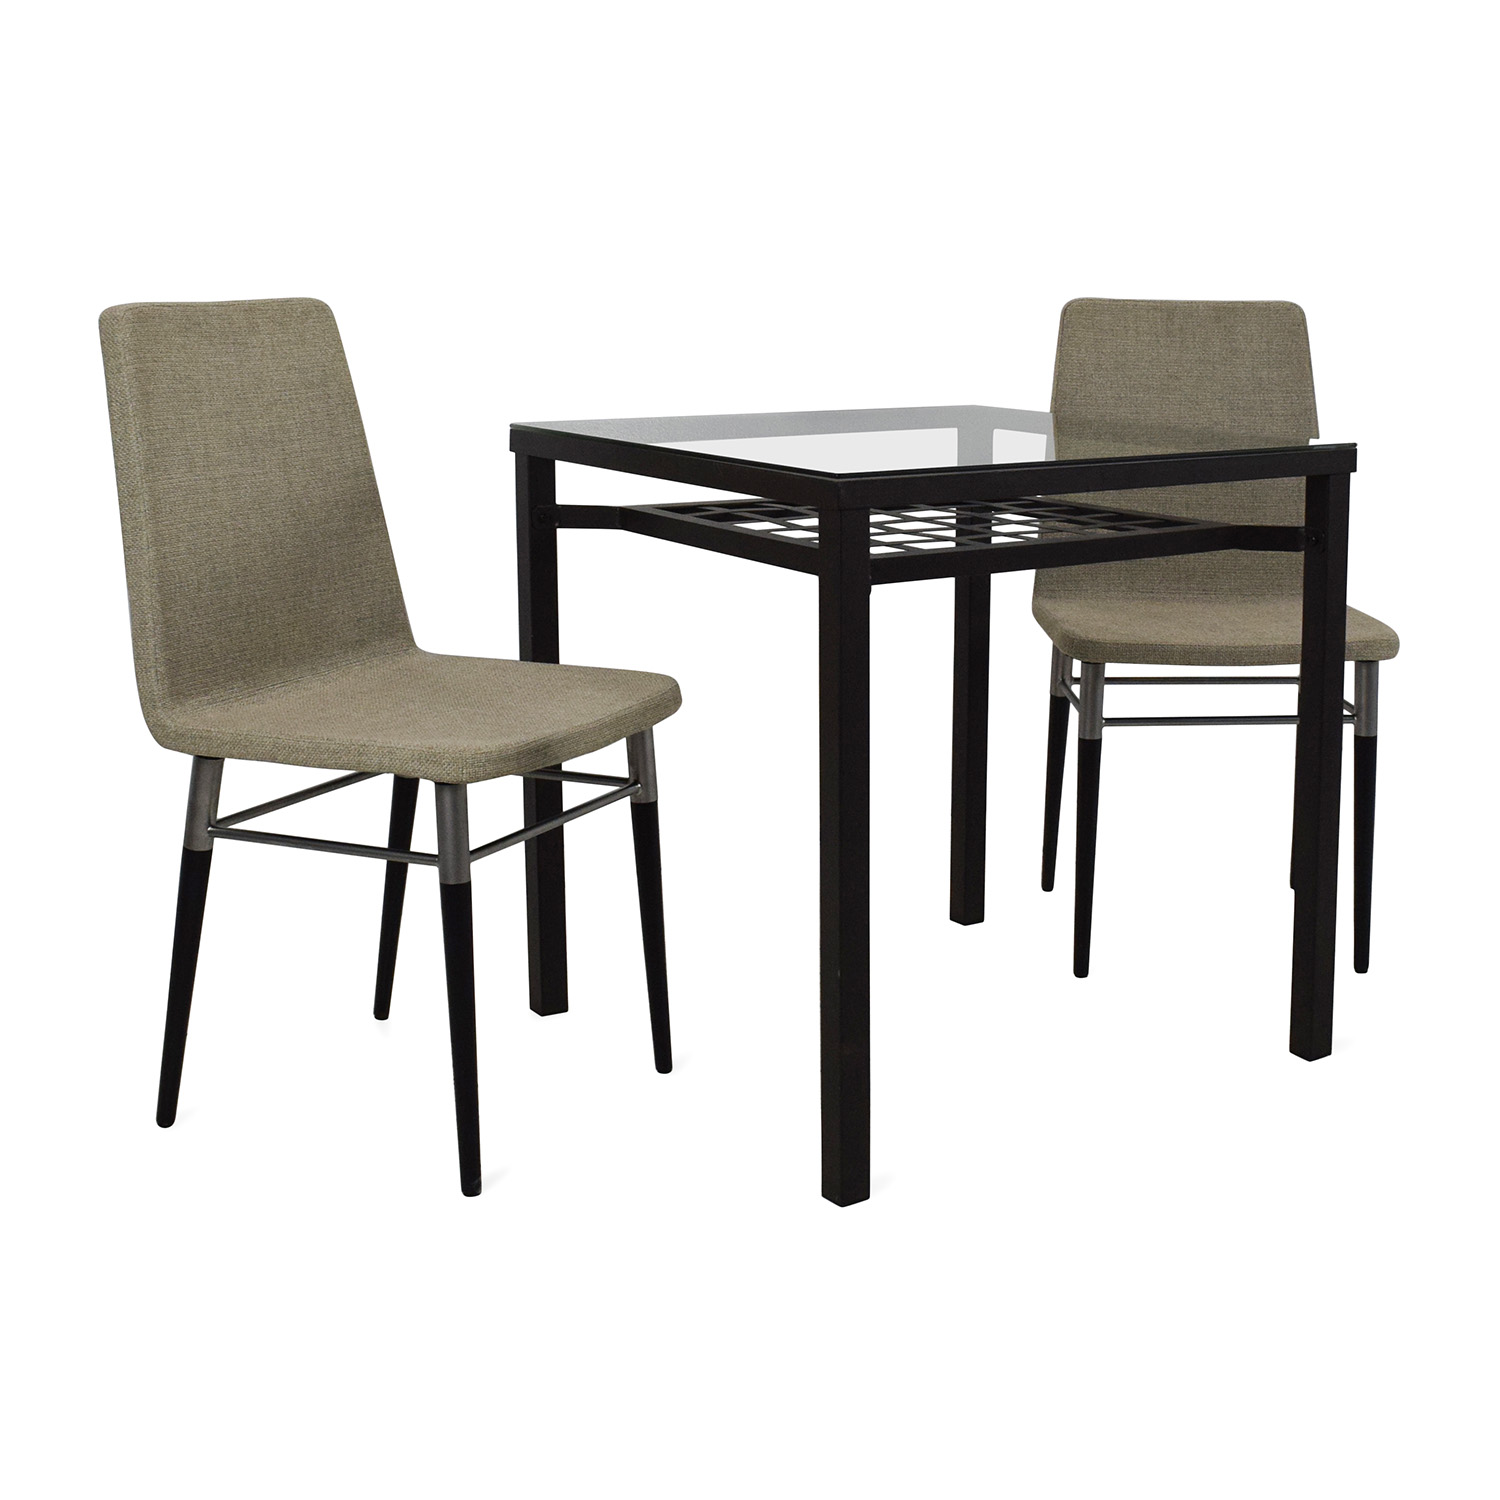 85 off ikea ikea granas table with preben chairs tables for Ikea dining table and chairs set